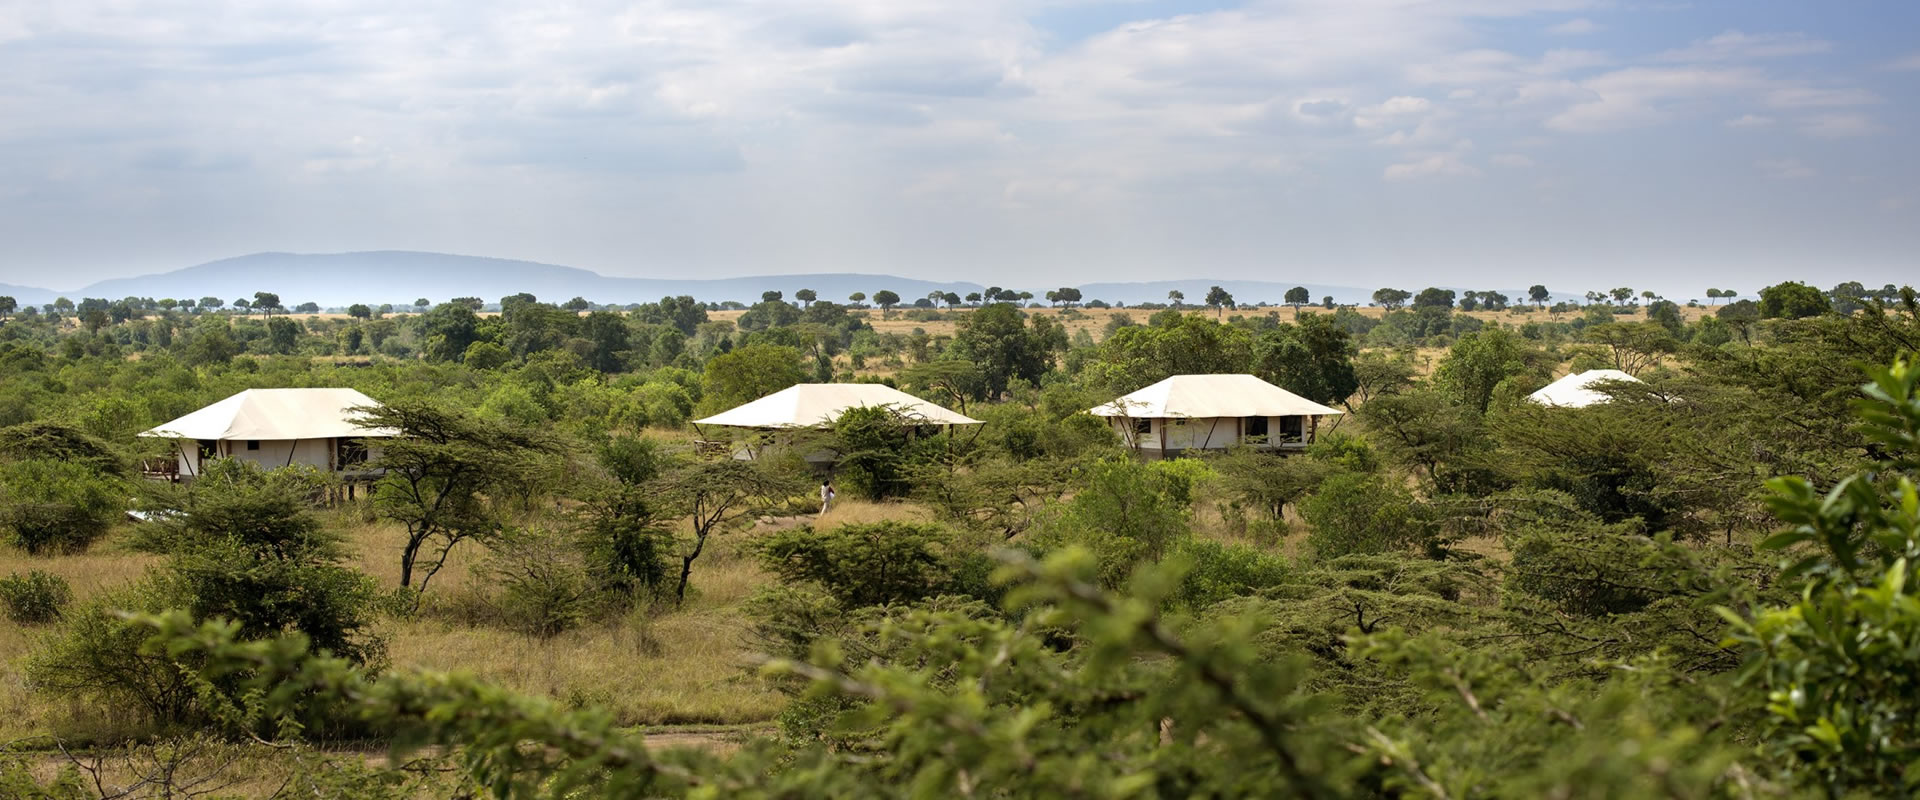 5 days maasai mara encoutner with flights